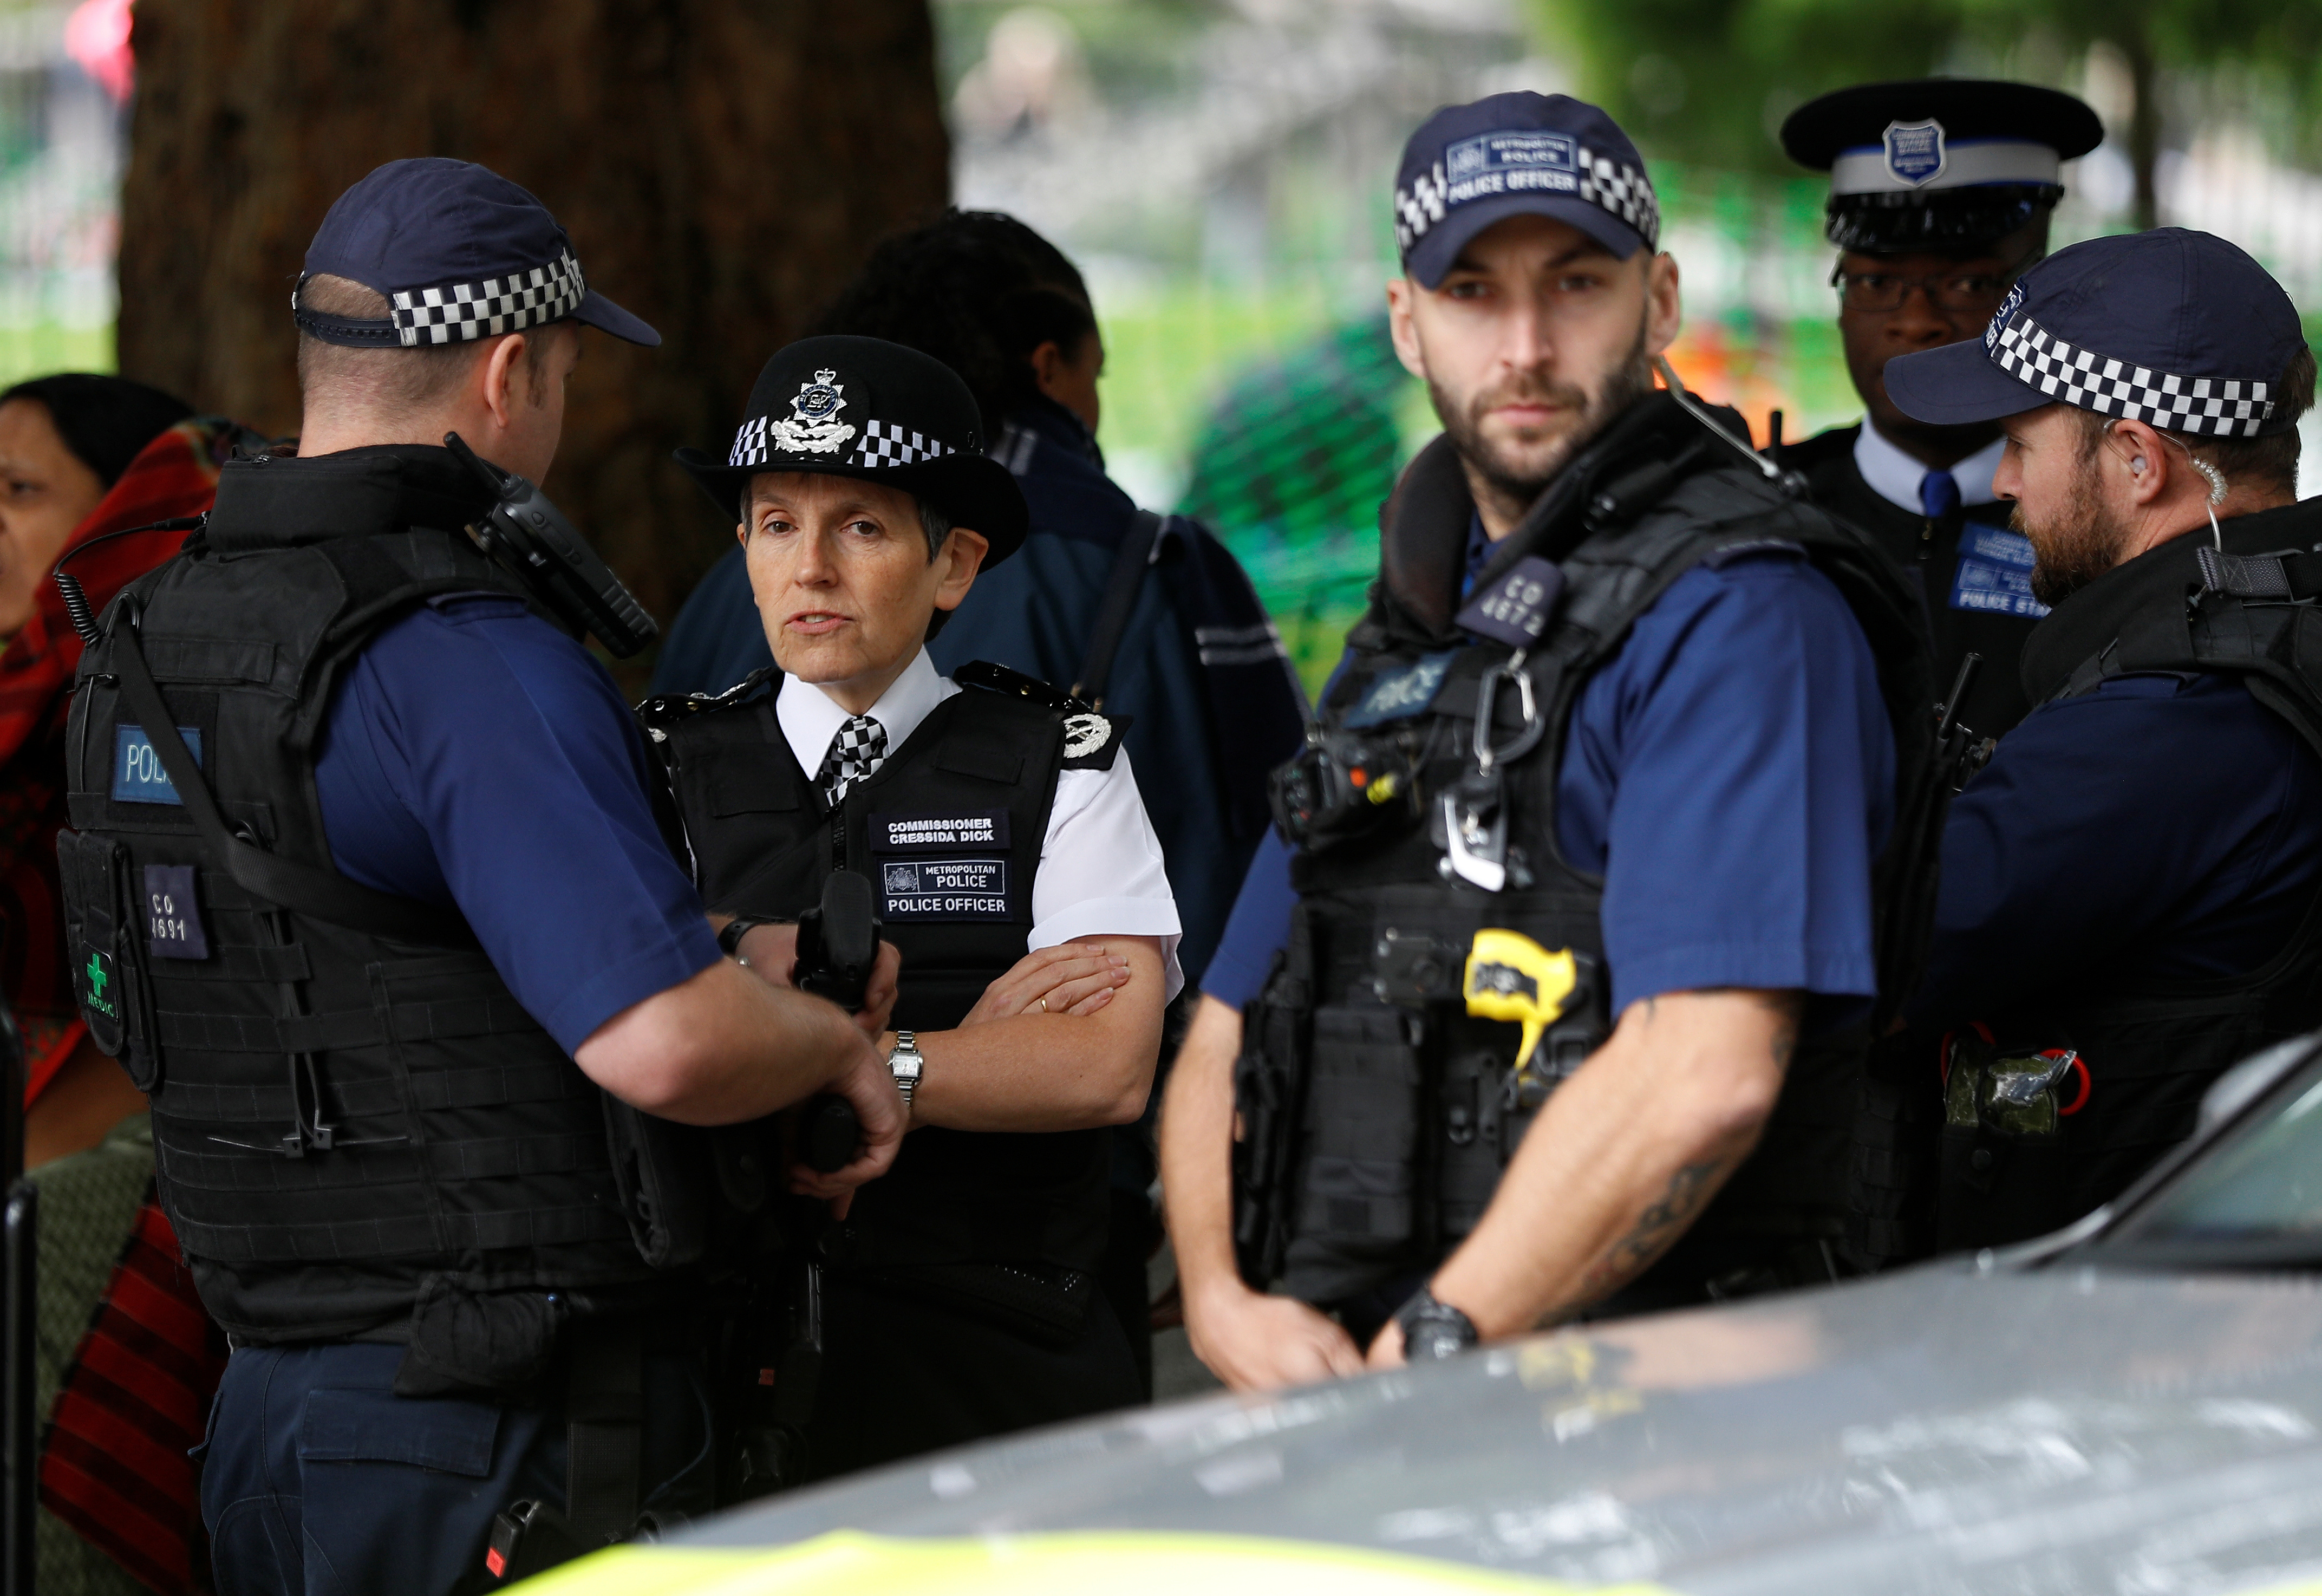 Cressida Dick, the Metropolitan Police Commissioner chats to armed officers as she walks along the Southbank in London, Britain, September 16, 2017. REUTERS/Peter Nicholls